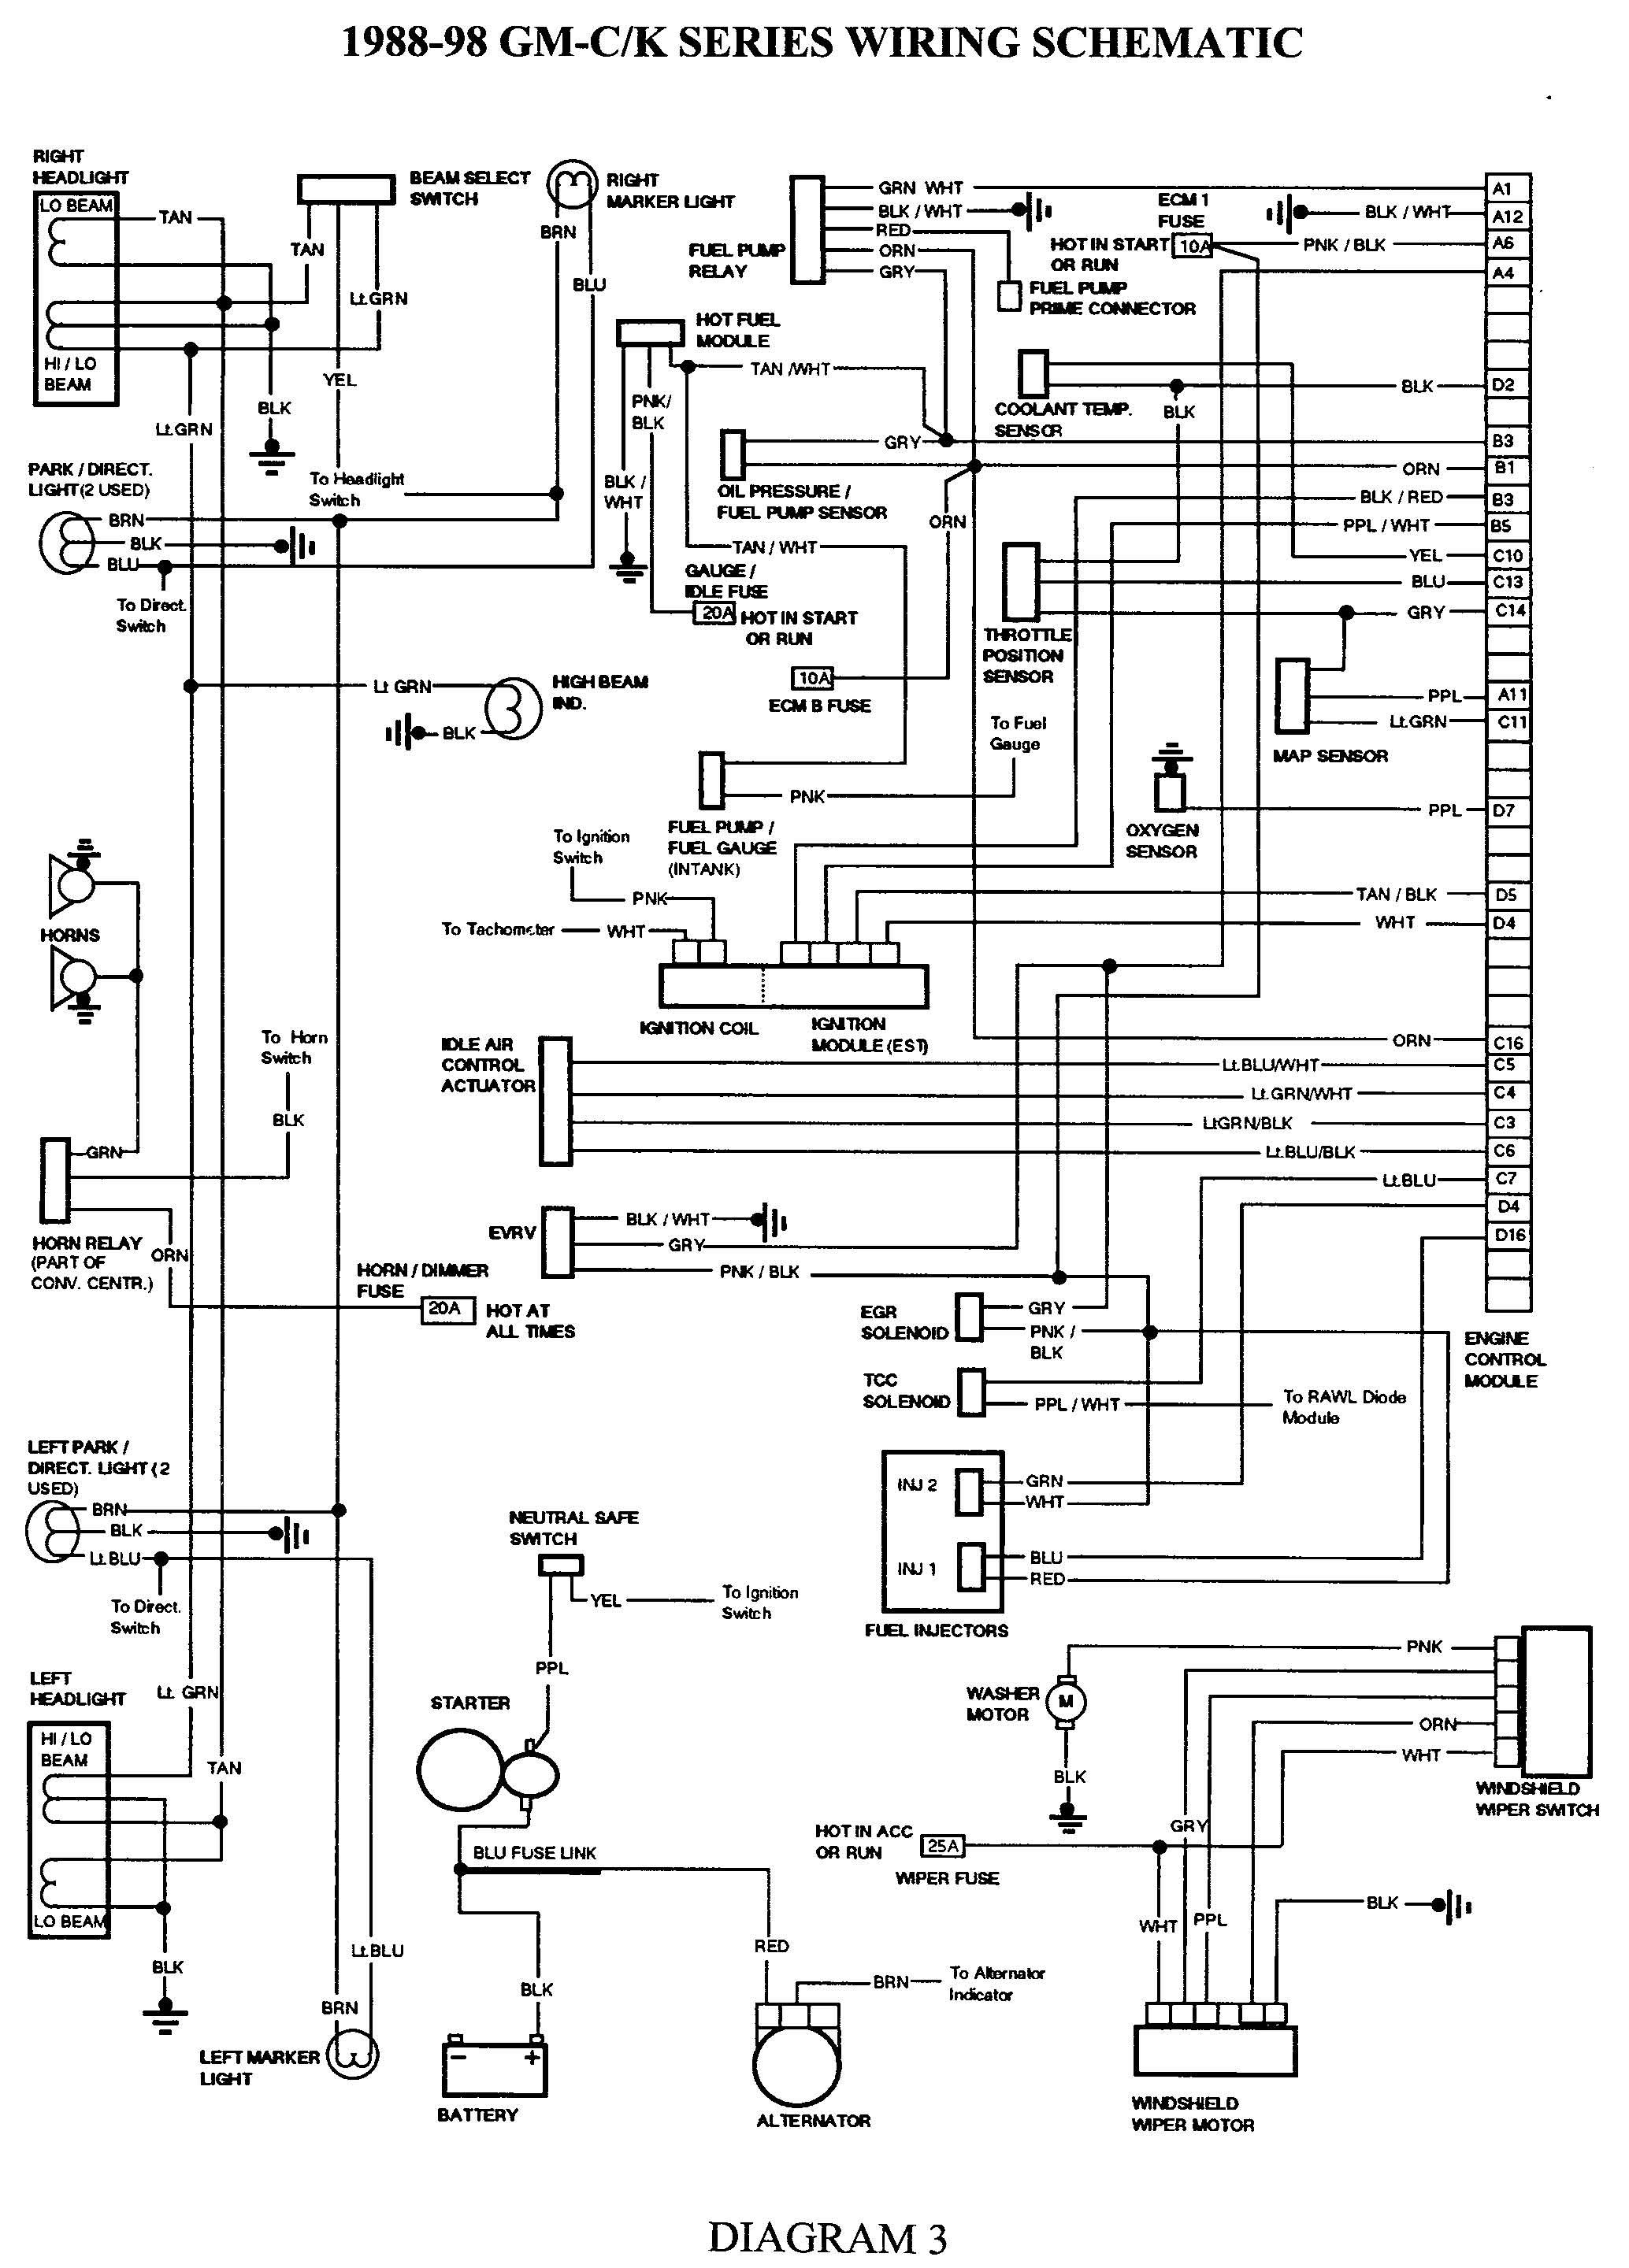 gmc truck wiring diagrams on gm wiring harness diagram 88 98 kc 1997 dodge commercial 1997 1997 dodge conversion van  [ 2068 x 2880 Pixel ]